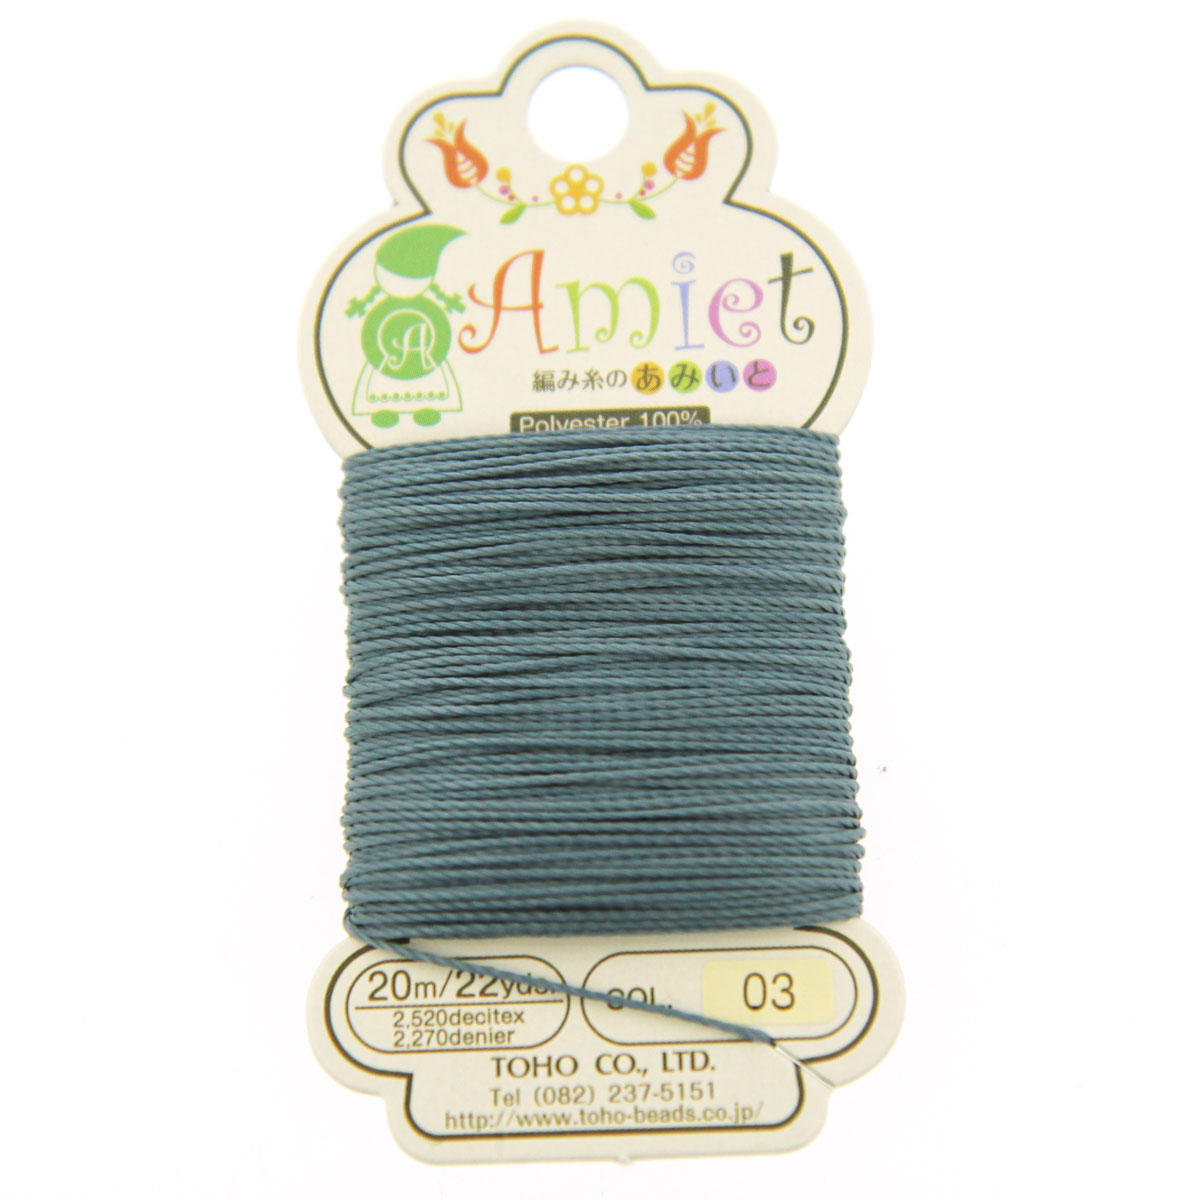 Amiet Charcoal Polyester Bead Cord